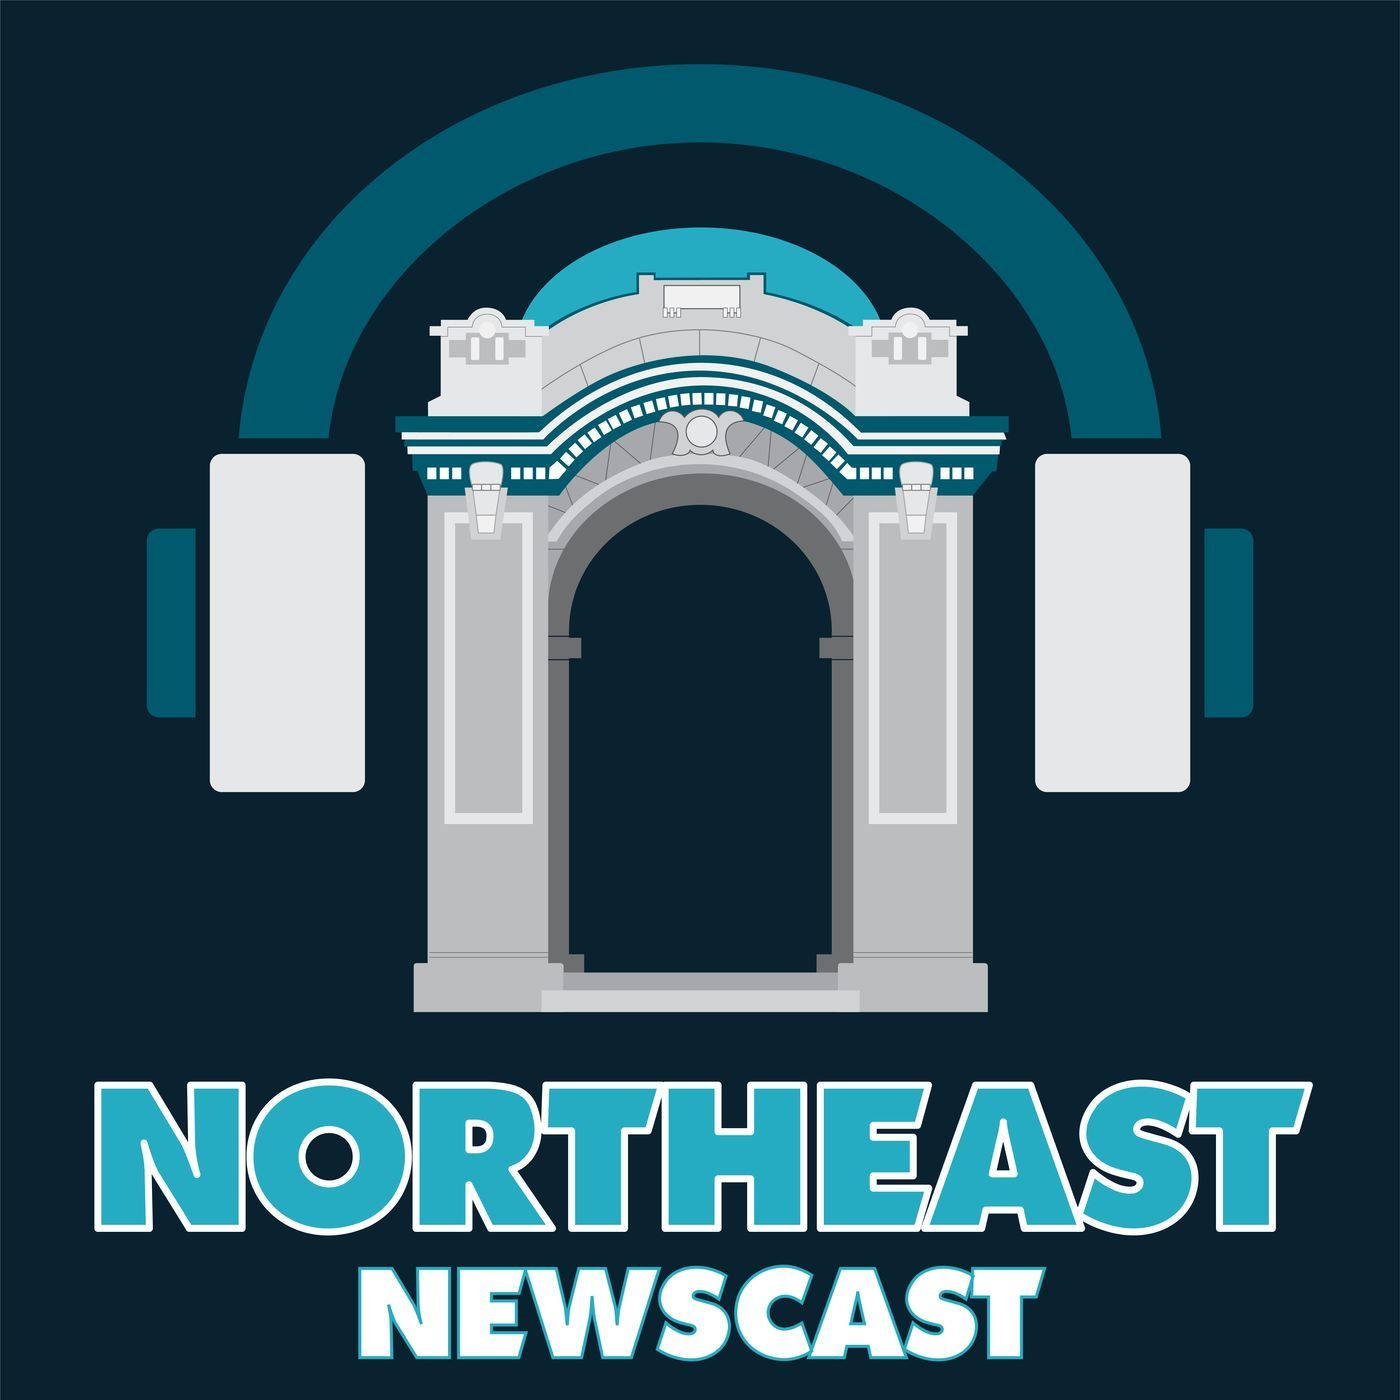 Kansas City's Northeast Newscast